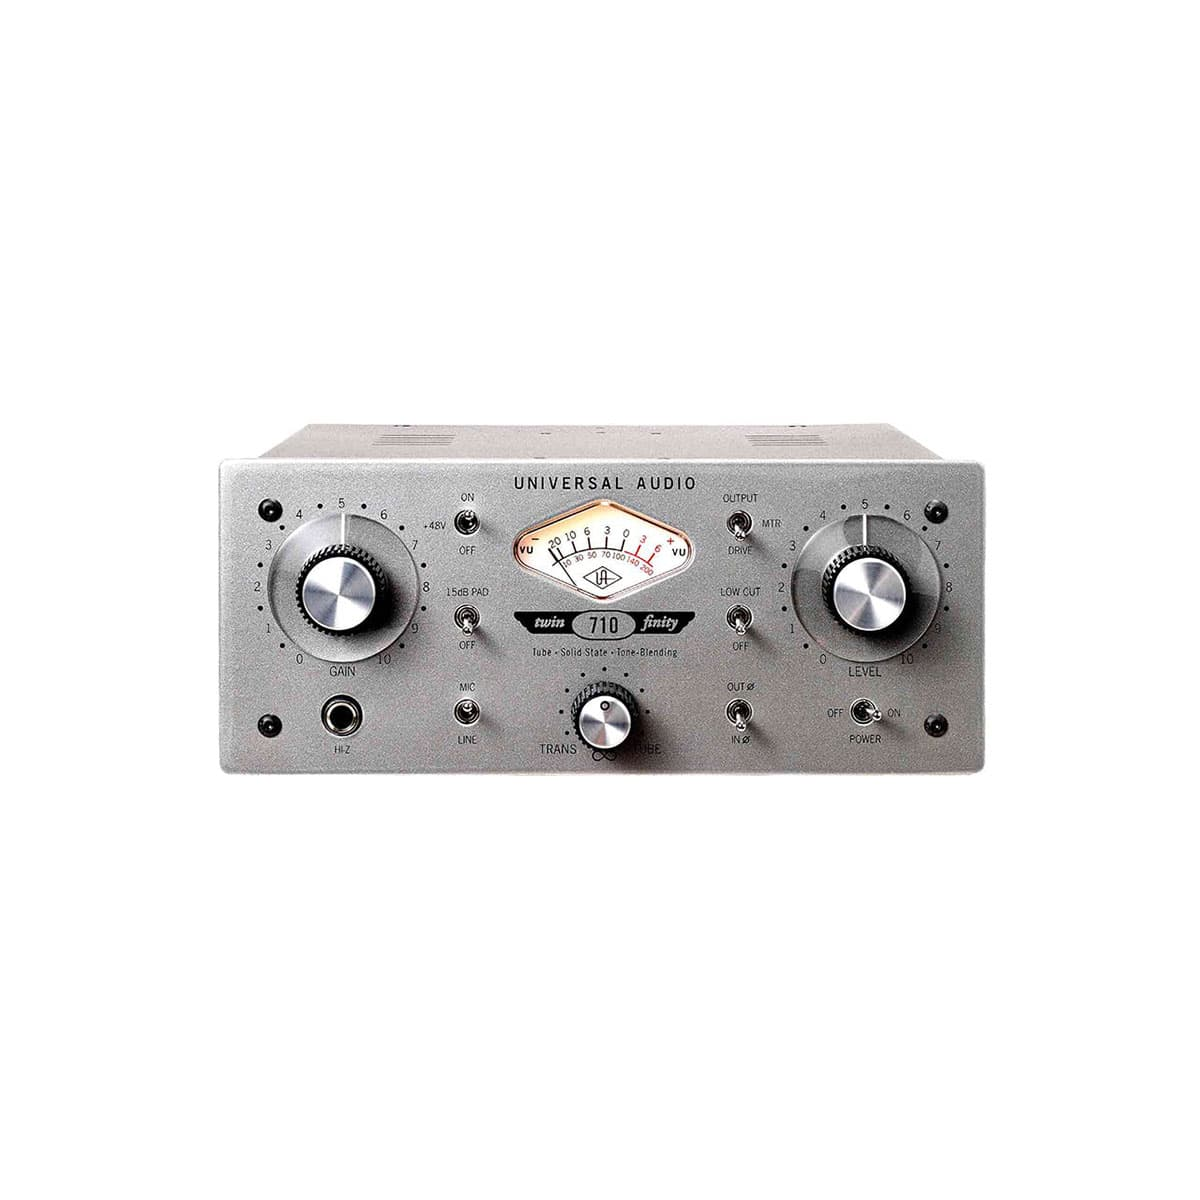 Universal Audio 710 twinfinity 01 Pro Audio, Outboard, Preamplificatori Microfonici, D.I./Reamp